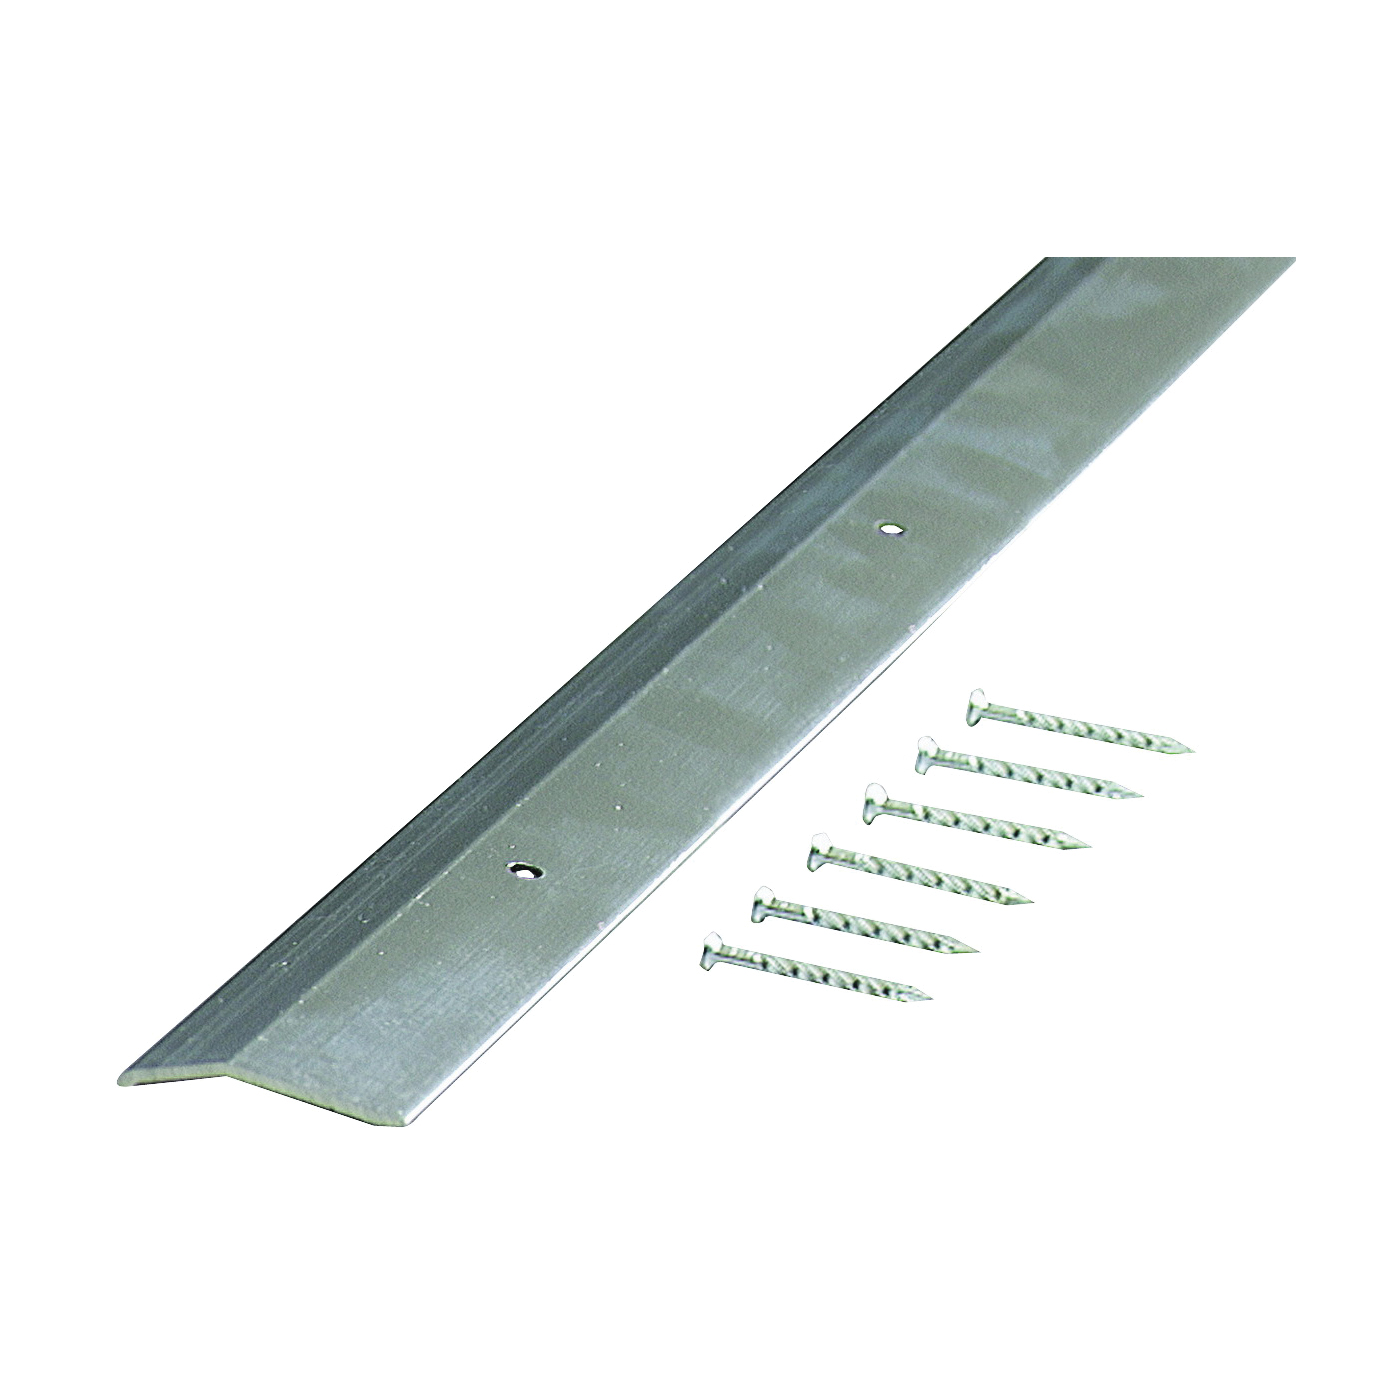 Picture of M-D 66092 Carpet Trim, 36 in L, 1.38 in W, Smooth Surface, Aluminum, Silver